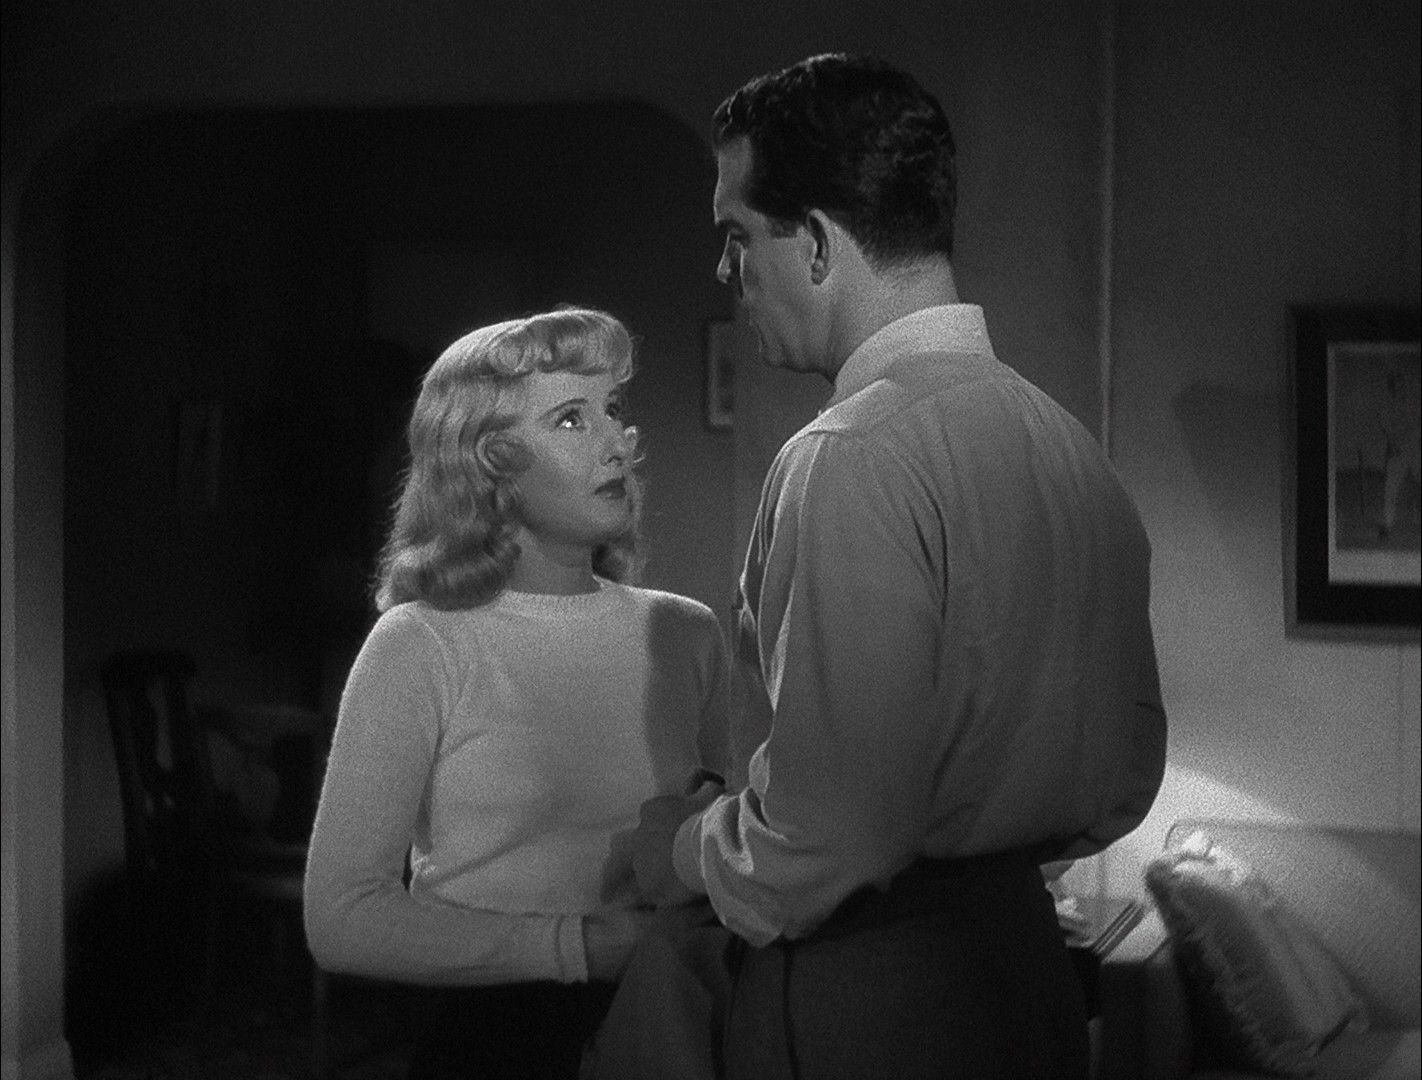 femme fatale double indemnity essay Femme fatale--negotiations of tragic desire new literary history, 35(1), 103-116 dick, b f (1995) columbia's dark ladies and the femmes fatales of film noir literature film quarterly, 23, 155-162 wilder, b (director) (1944) double indemnity [motion picture] united states.